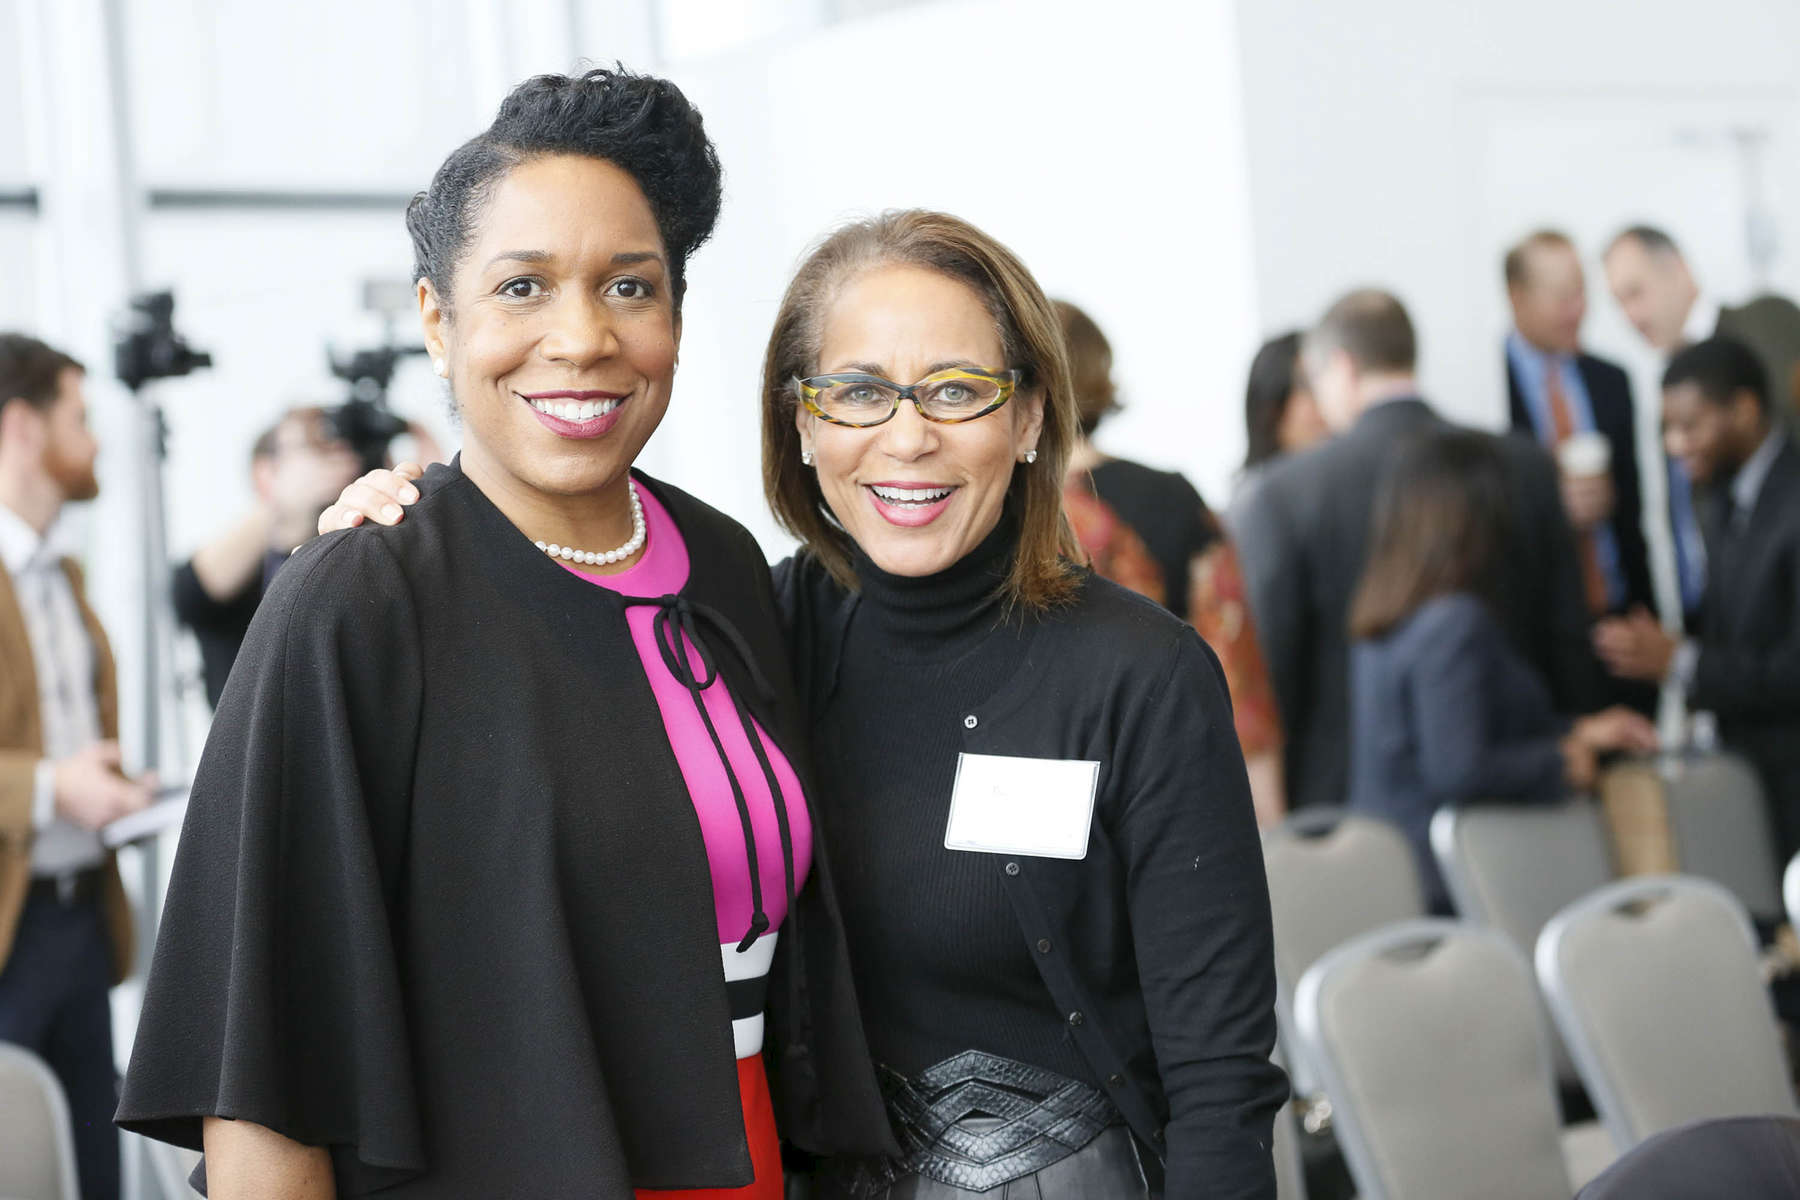 Lt. Governor Juliana Stratton poses for photos at the SMASH Illinois launch in Chicago, Illinois on January 24, 2019.